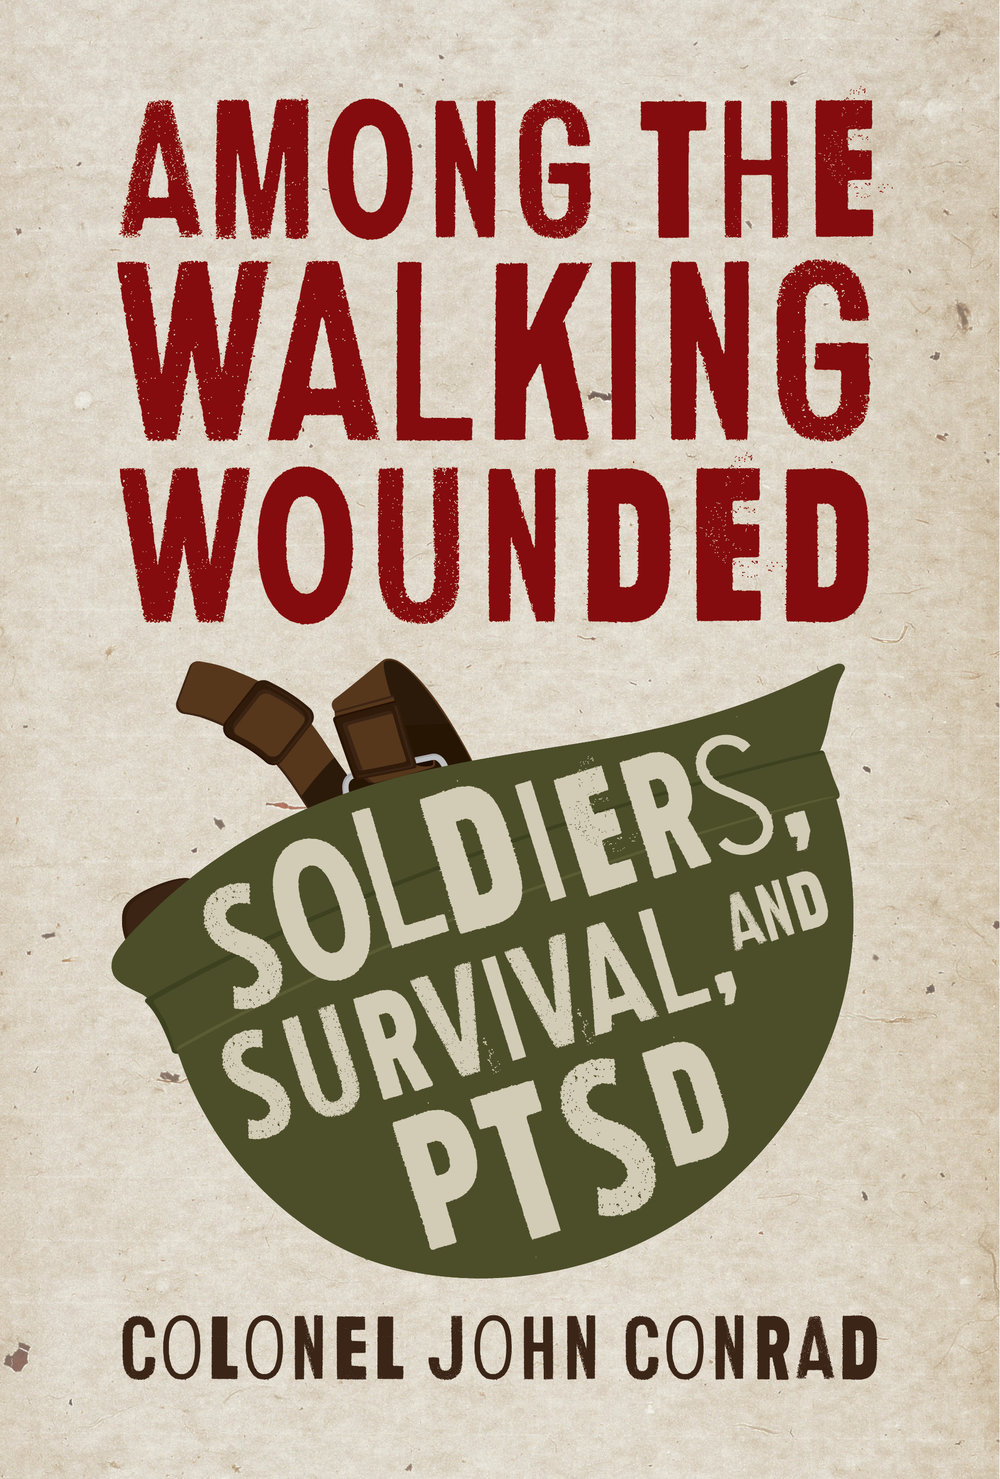 AmongTheWalkingWounded.jpg